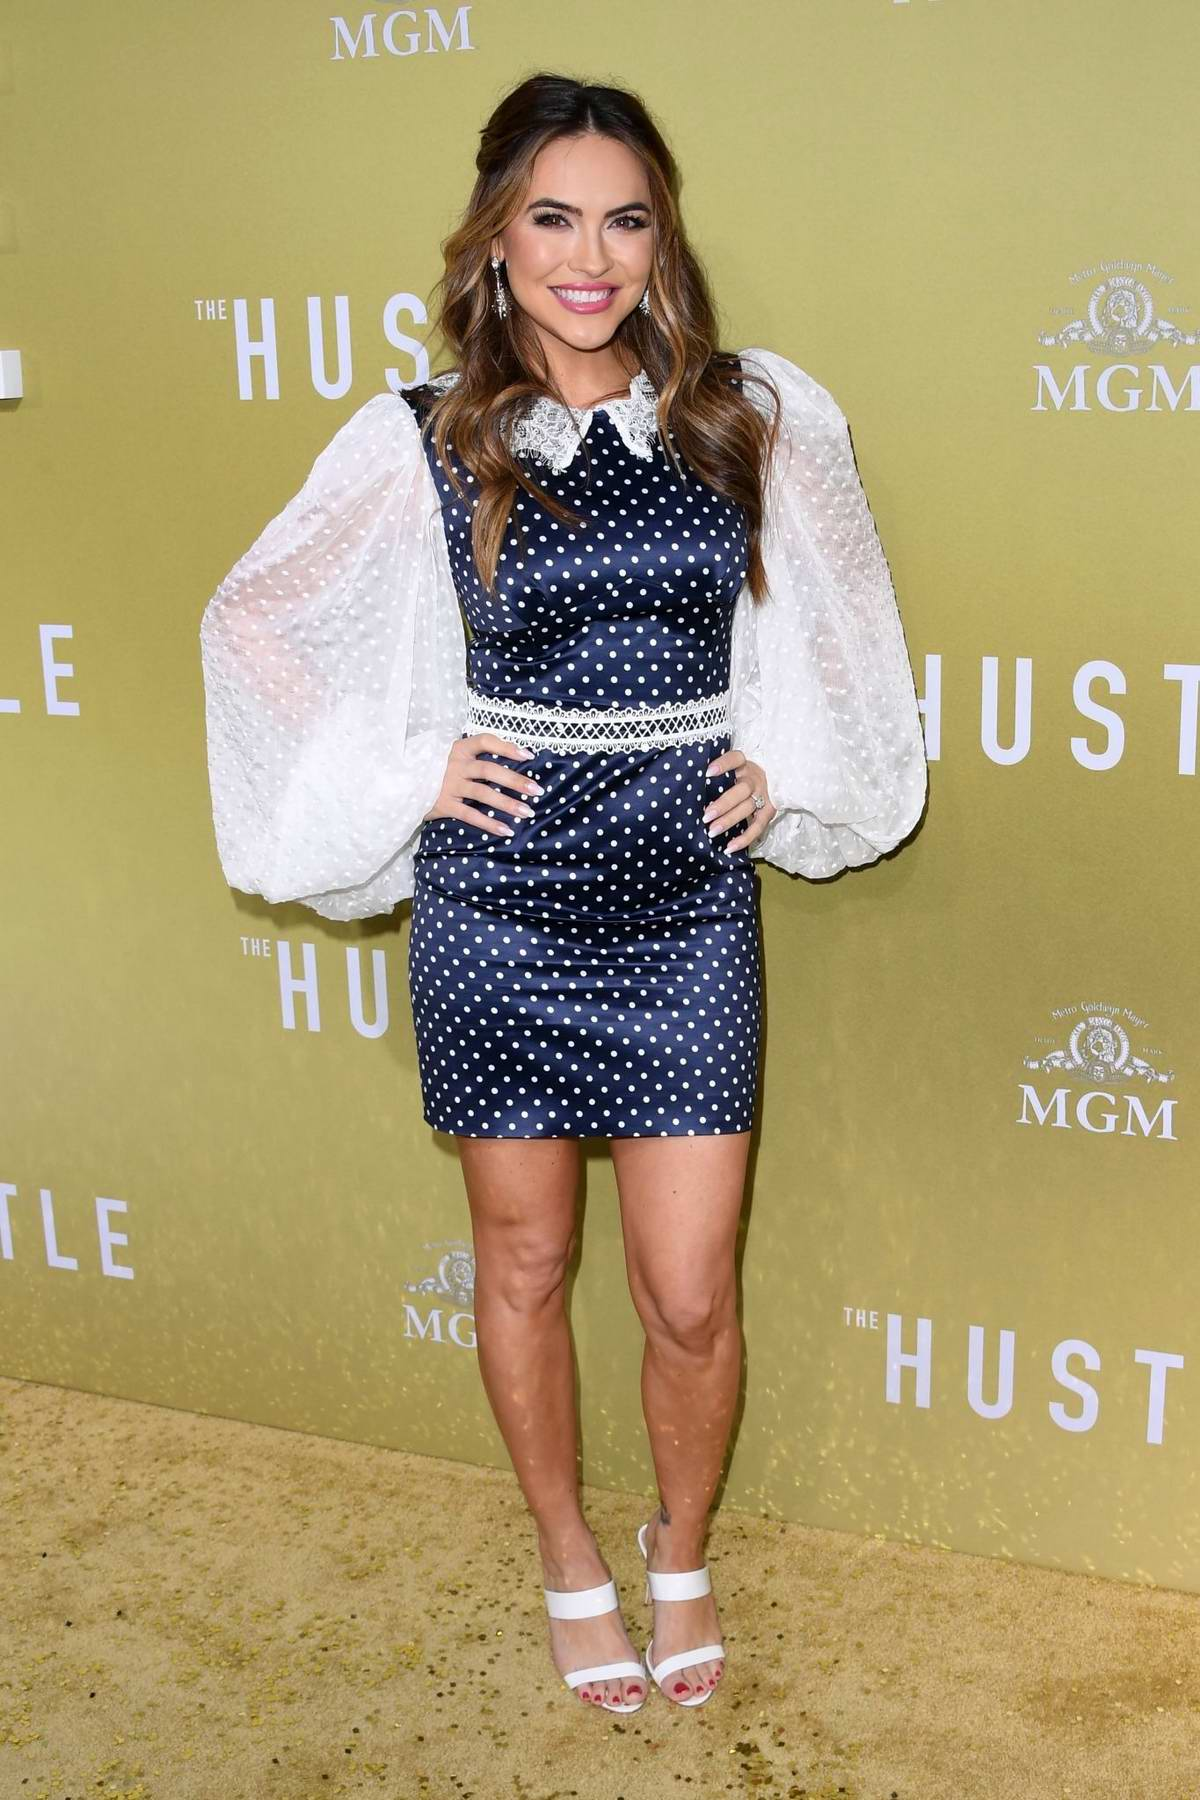 Chrishell Stause attends the premiere of 'The Hustle' at Arclight Cinerama Dome in Hollywood, California